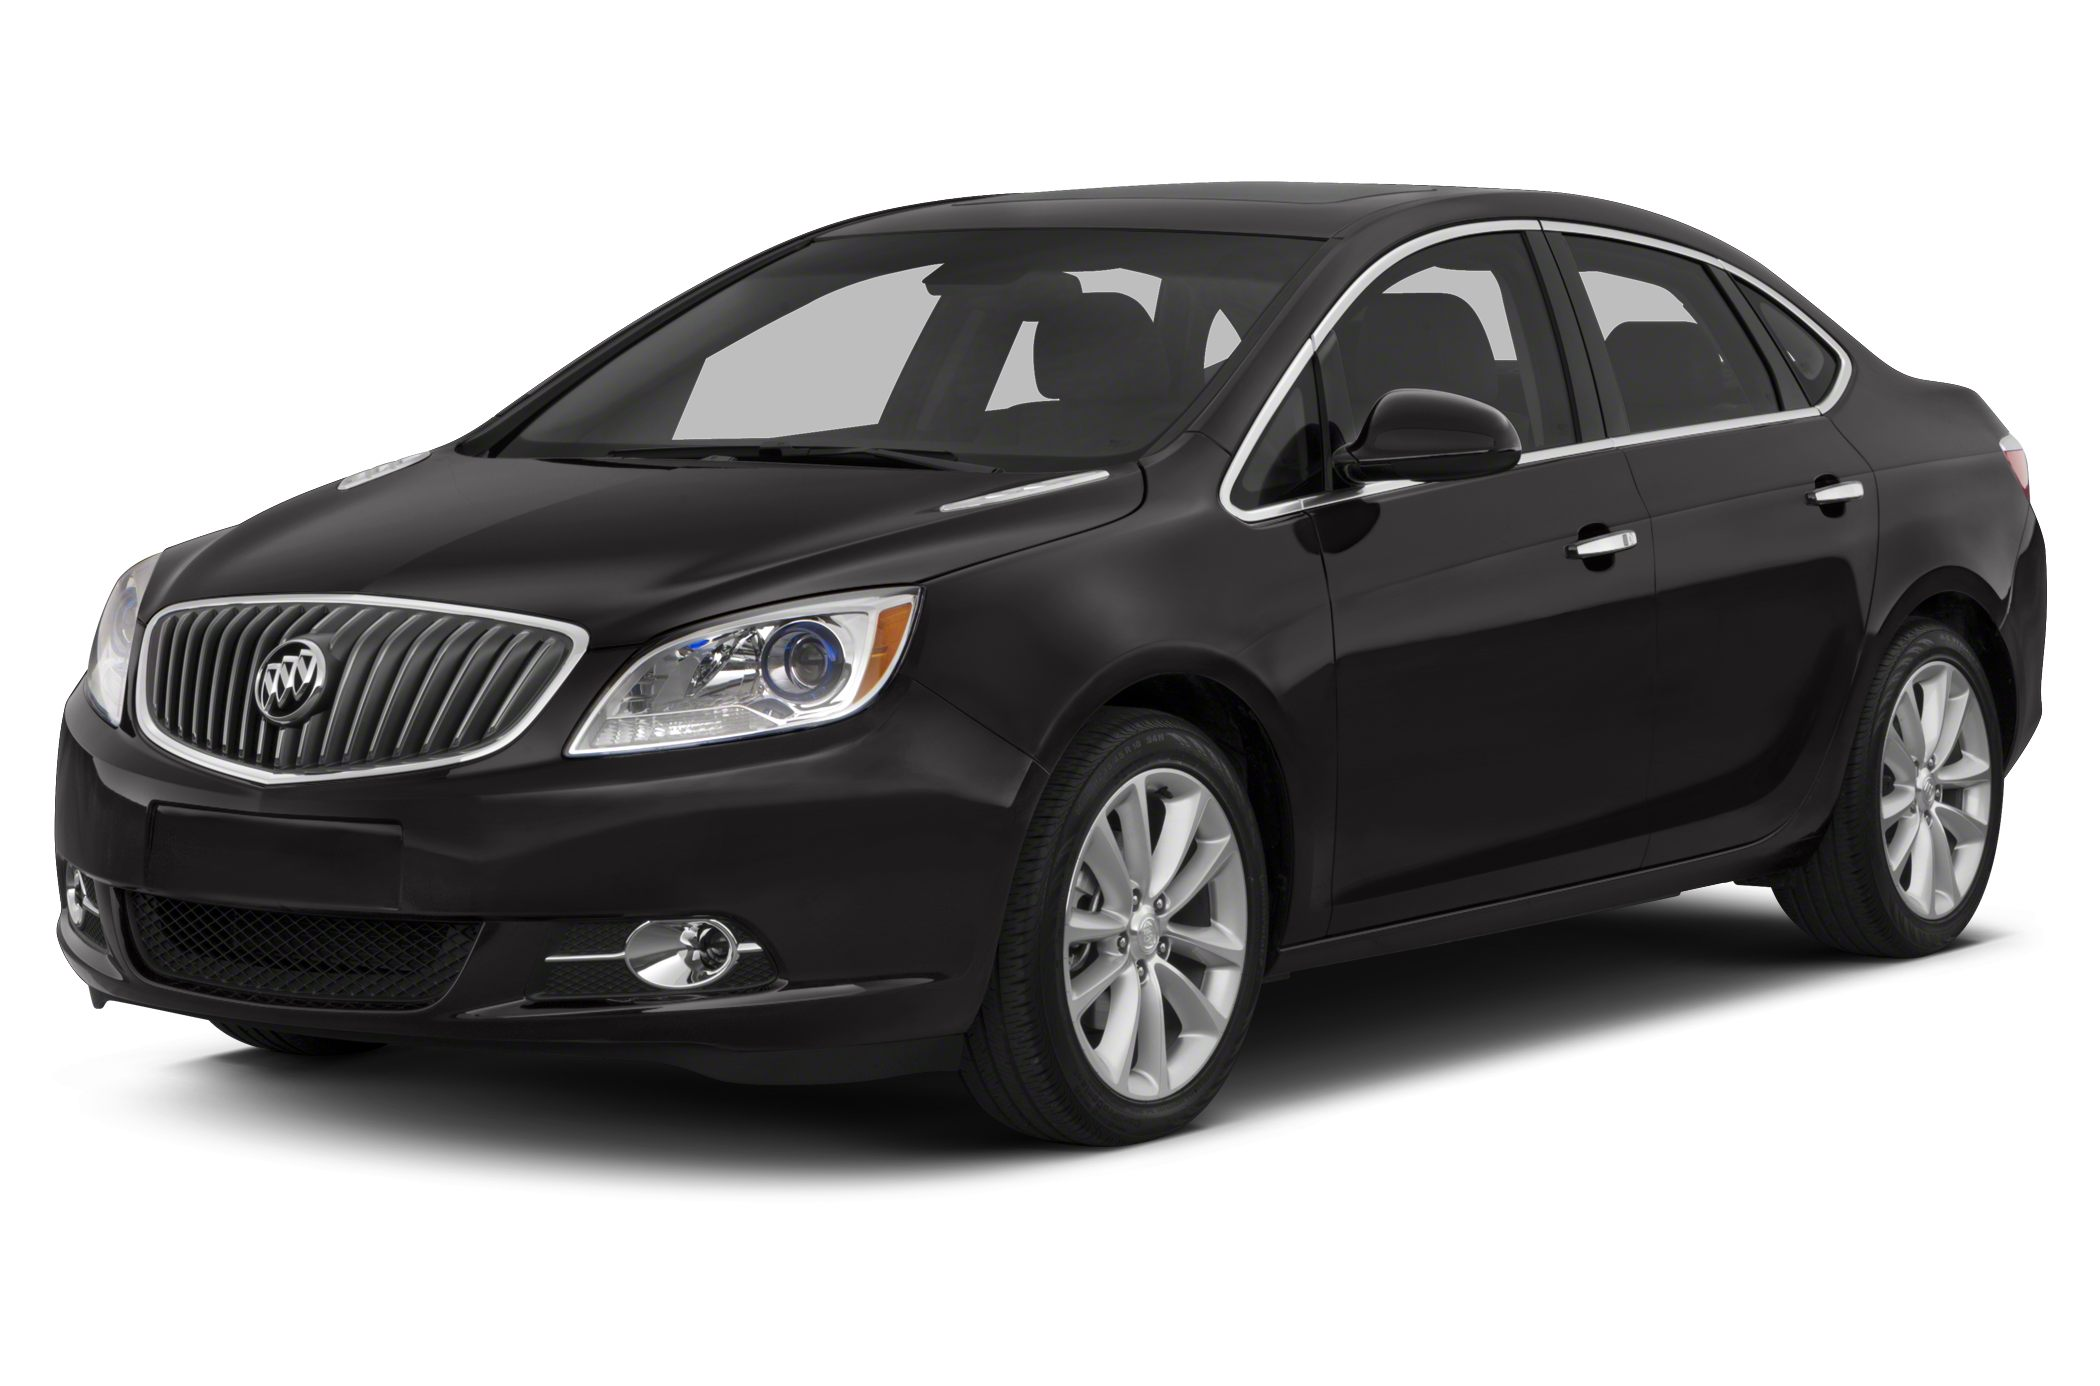 2013 Buick Verano Base Sedan for sale in Williamsburg for $16,990 with 36,786 miles.